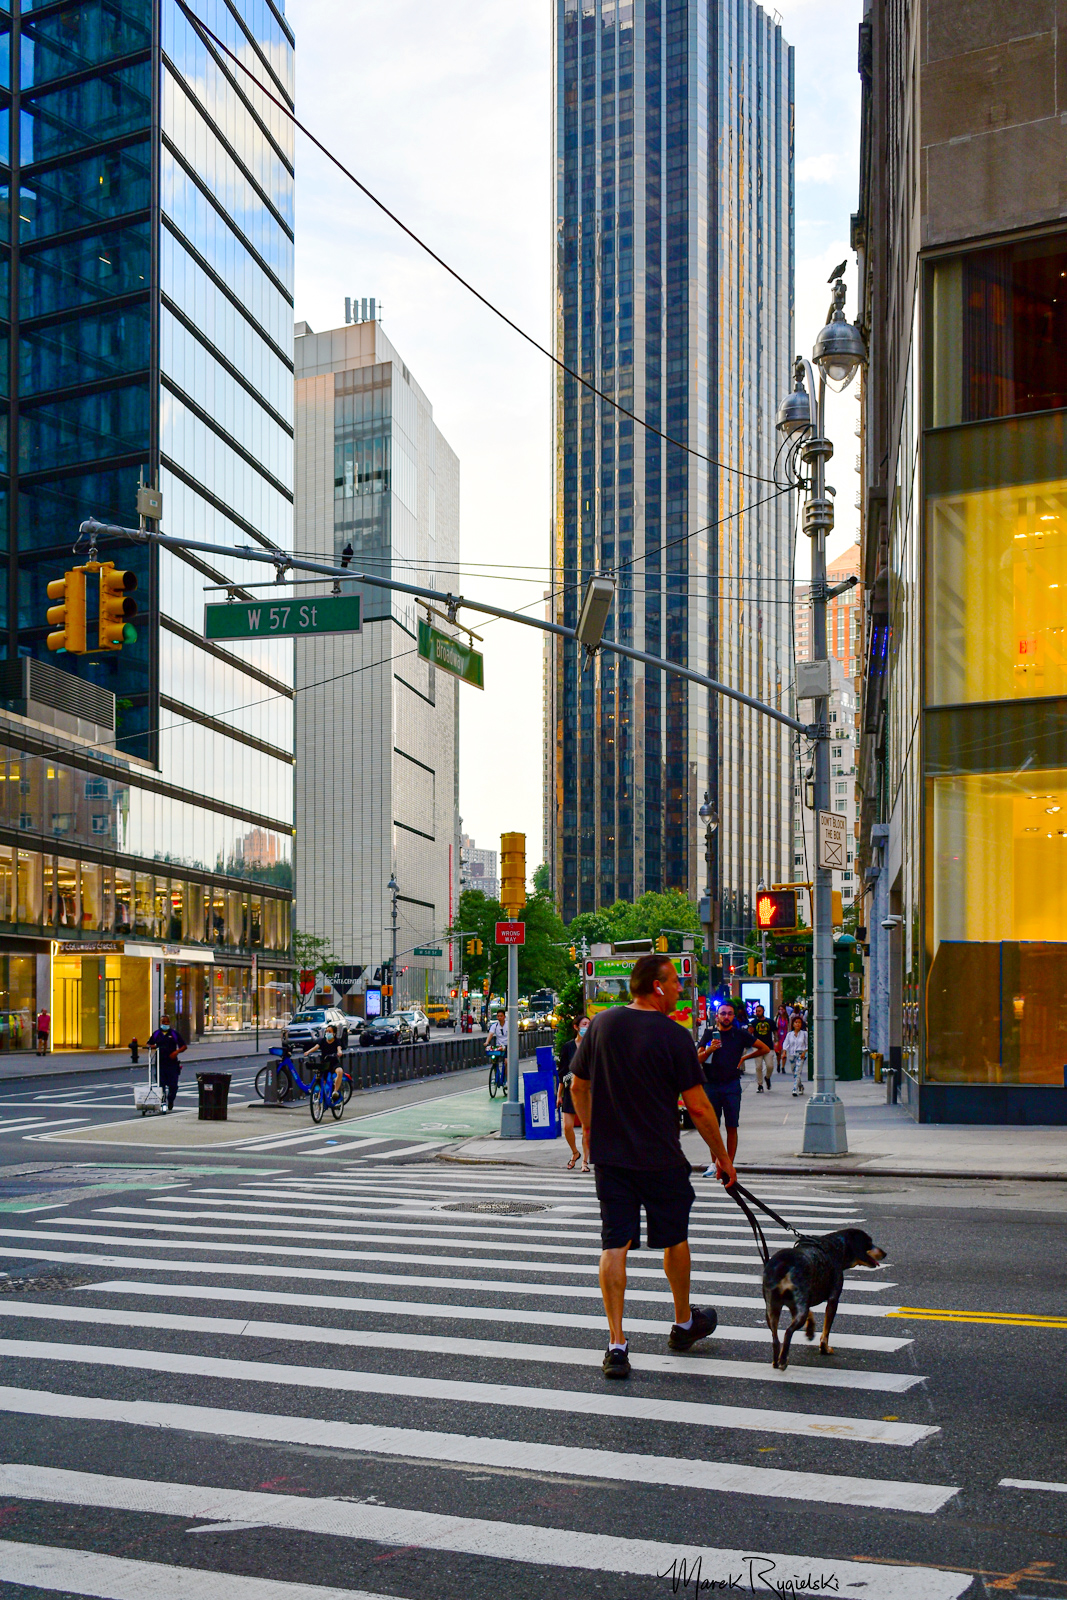 Columbus Circle - view from Broadway & 57th Street.